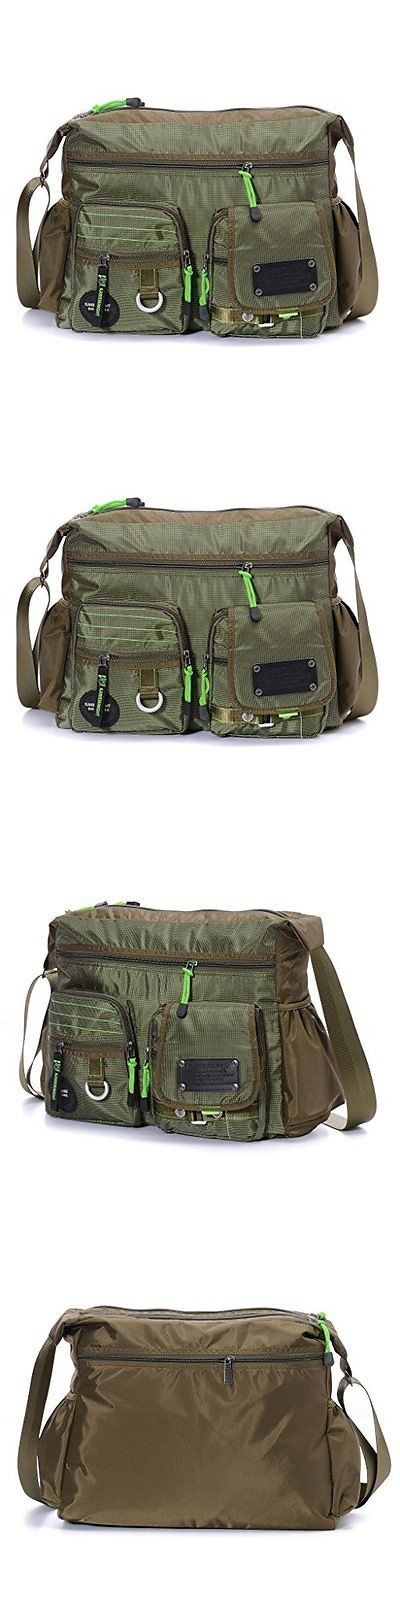 Other A V Media and Storage: 14 Laptop Messenger Bag - For School Outdoor Sports And Travel - For Men And Women -> BUY IT NOW ONLY: $30.95 on eBay!